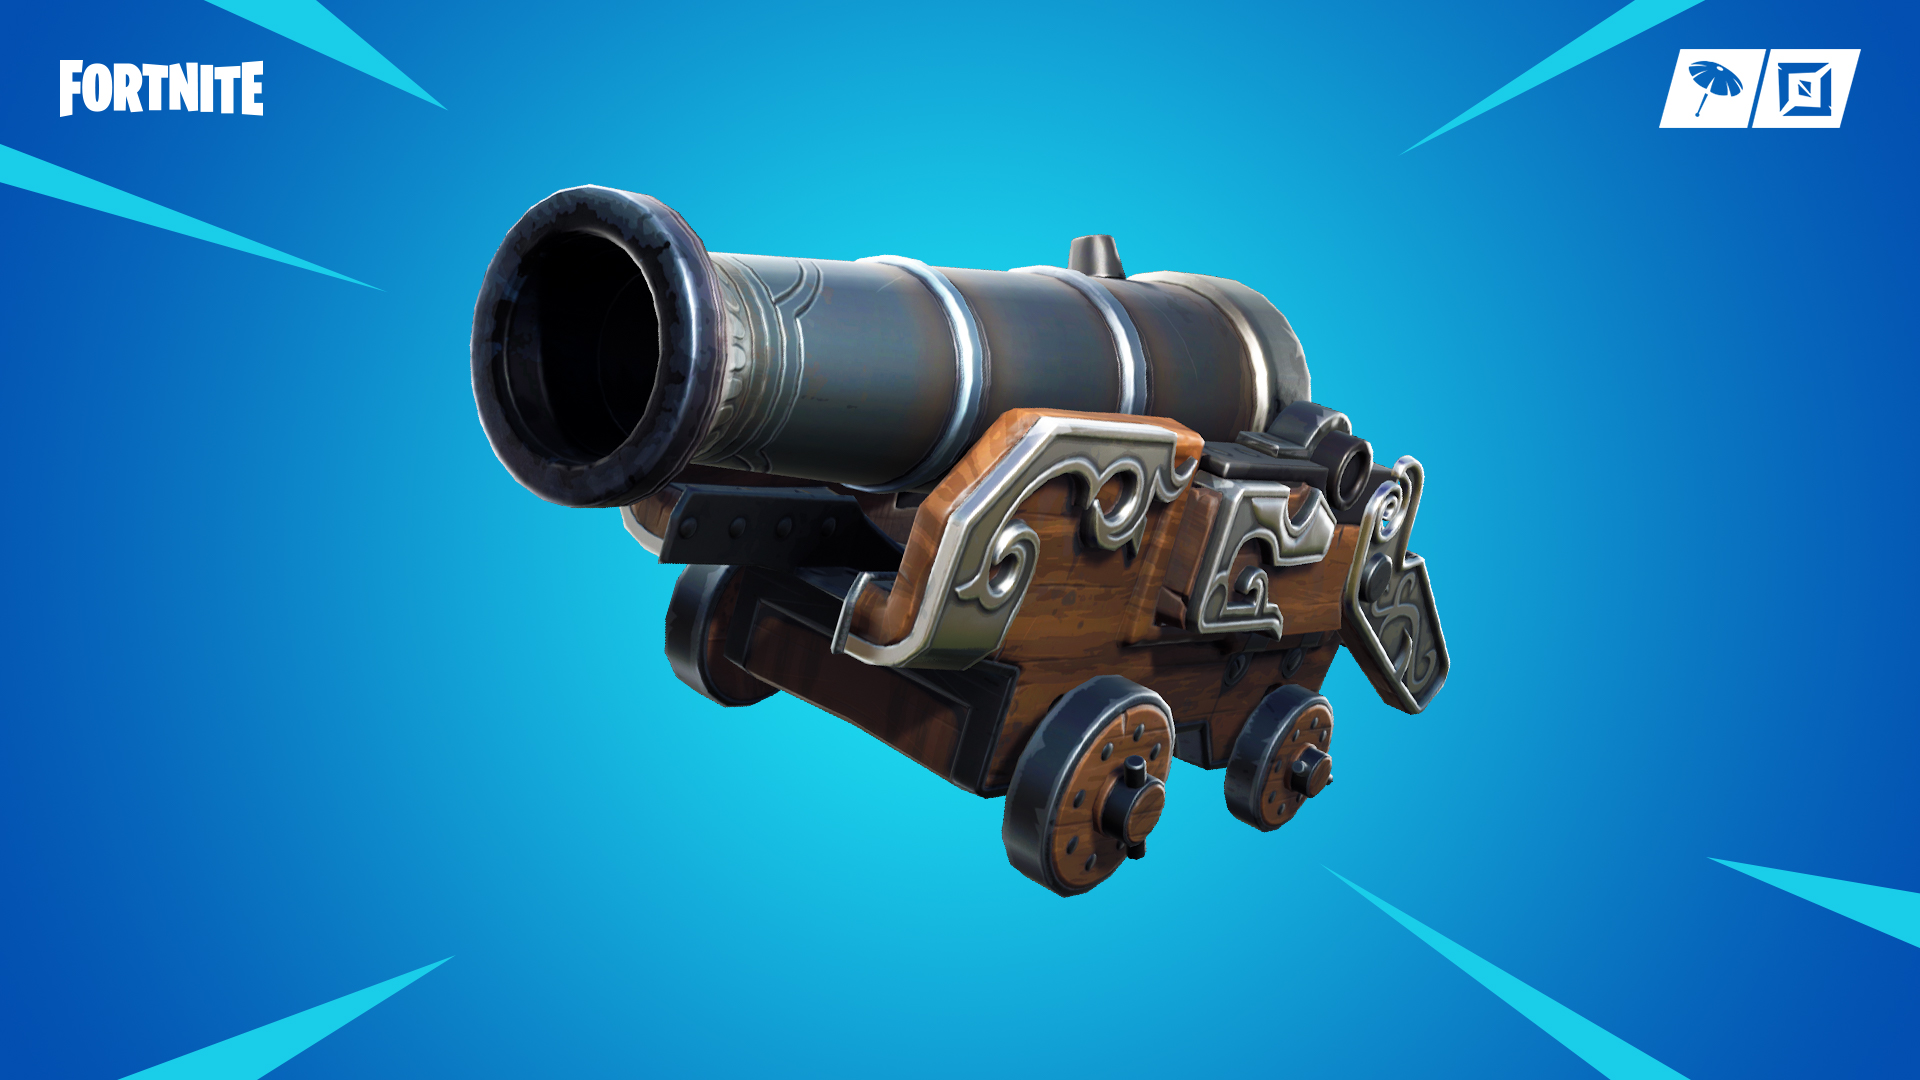 Fortnite%2Fpatch-notes%2Fv8-00%2Fbr-header-v8-00%2FBR08_Social_PirateCannon-1920x1080-5f700a0f80e81232df19a73cca73180ffee713e8.jpg